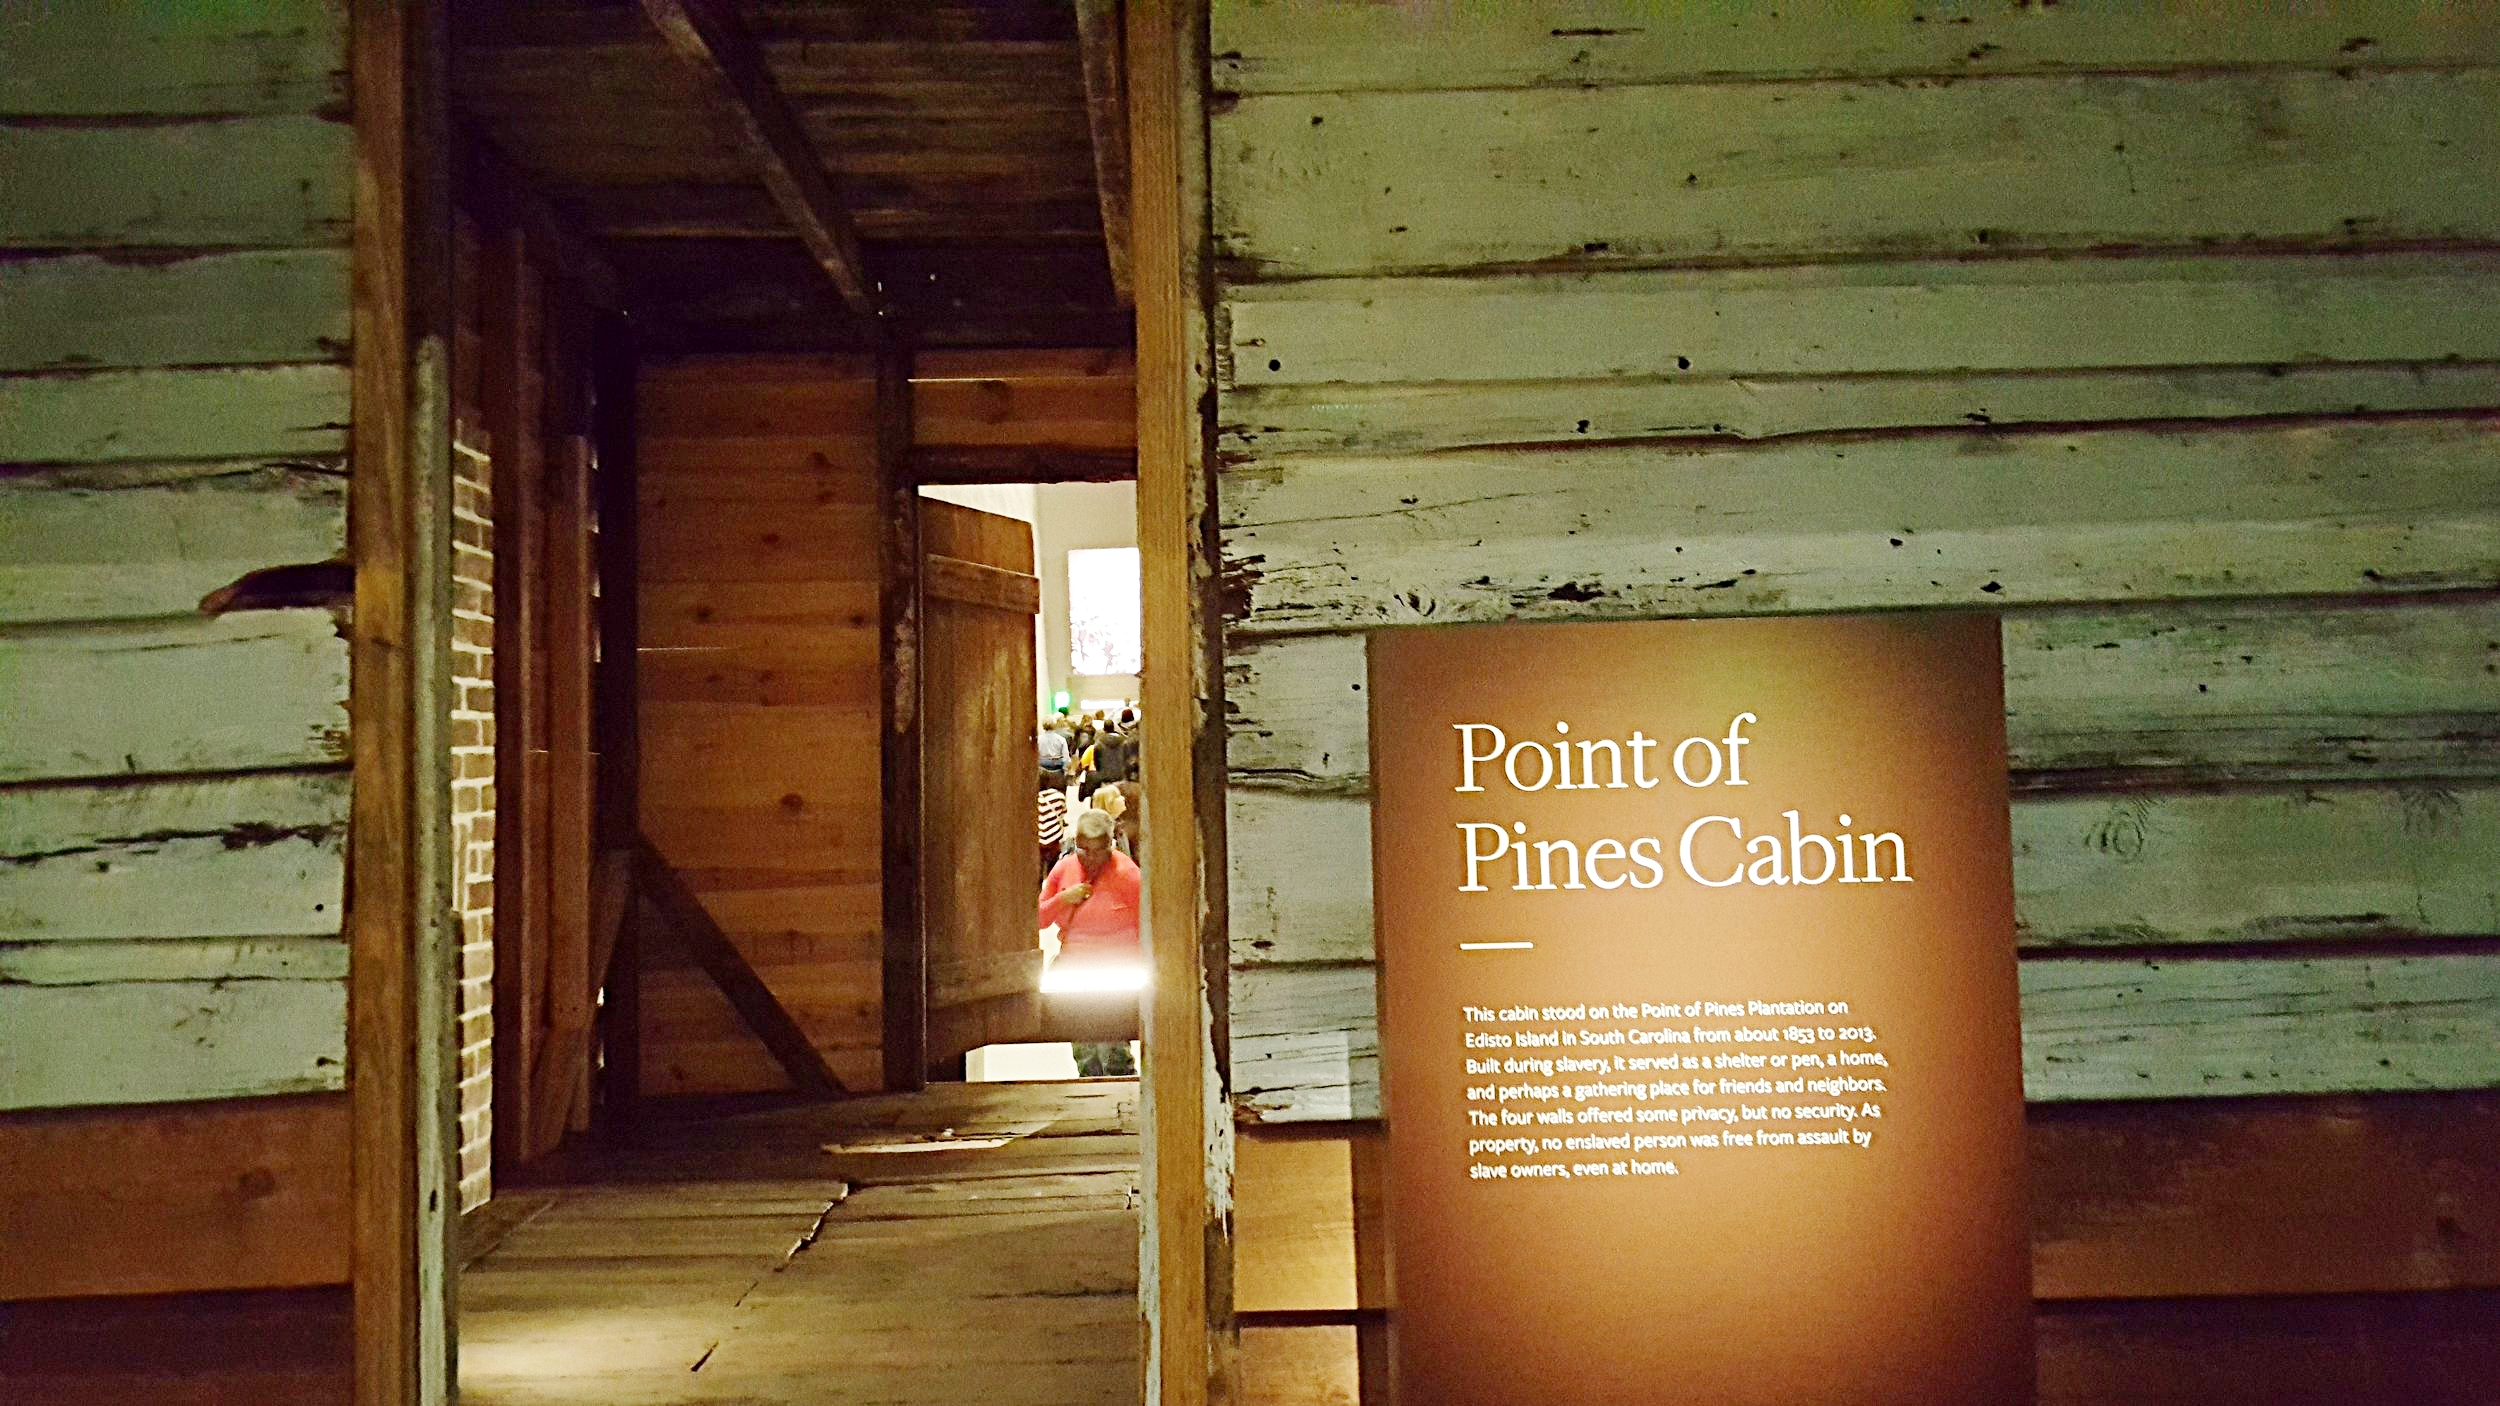 The Cabin now stands as center focal point inside the new Smithsonian Museum